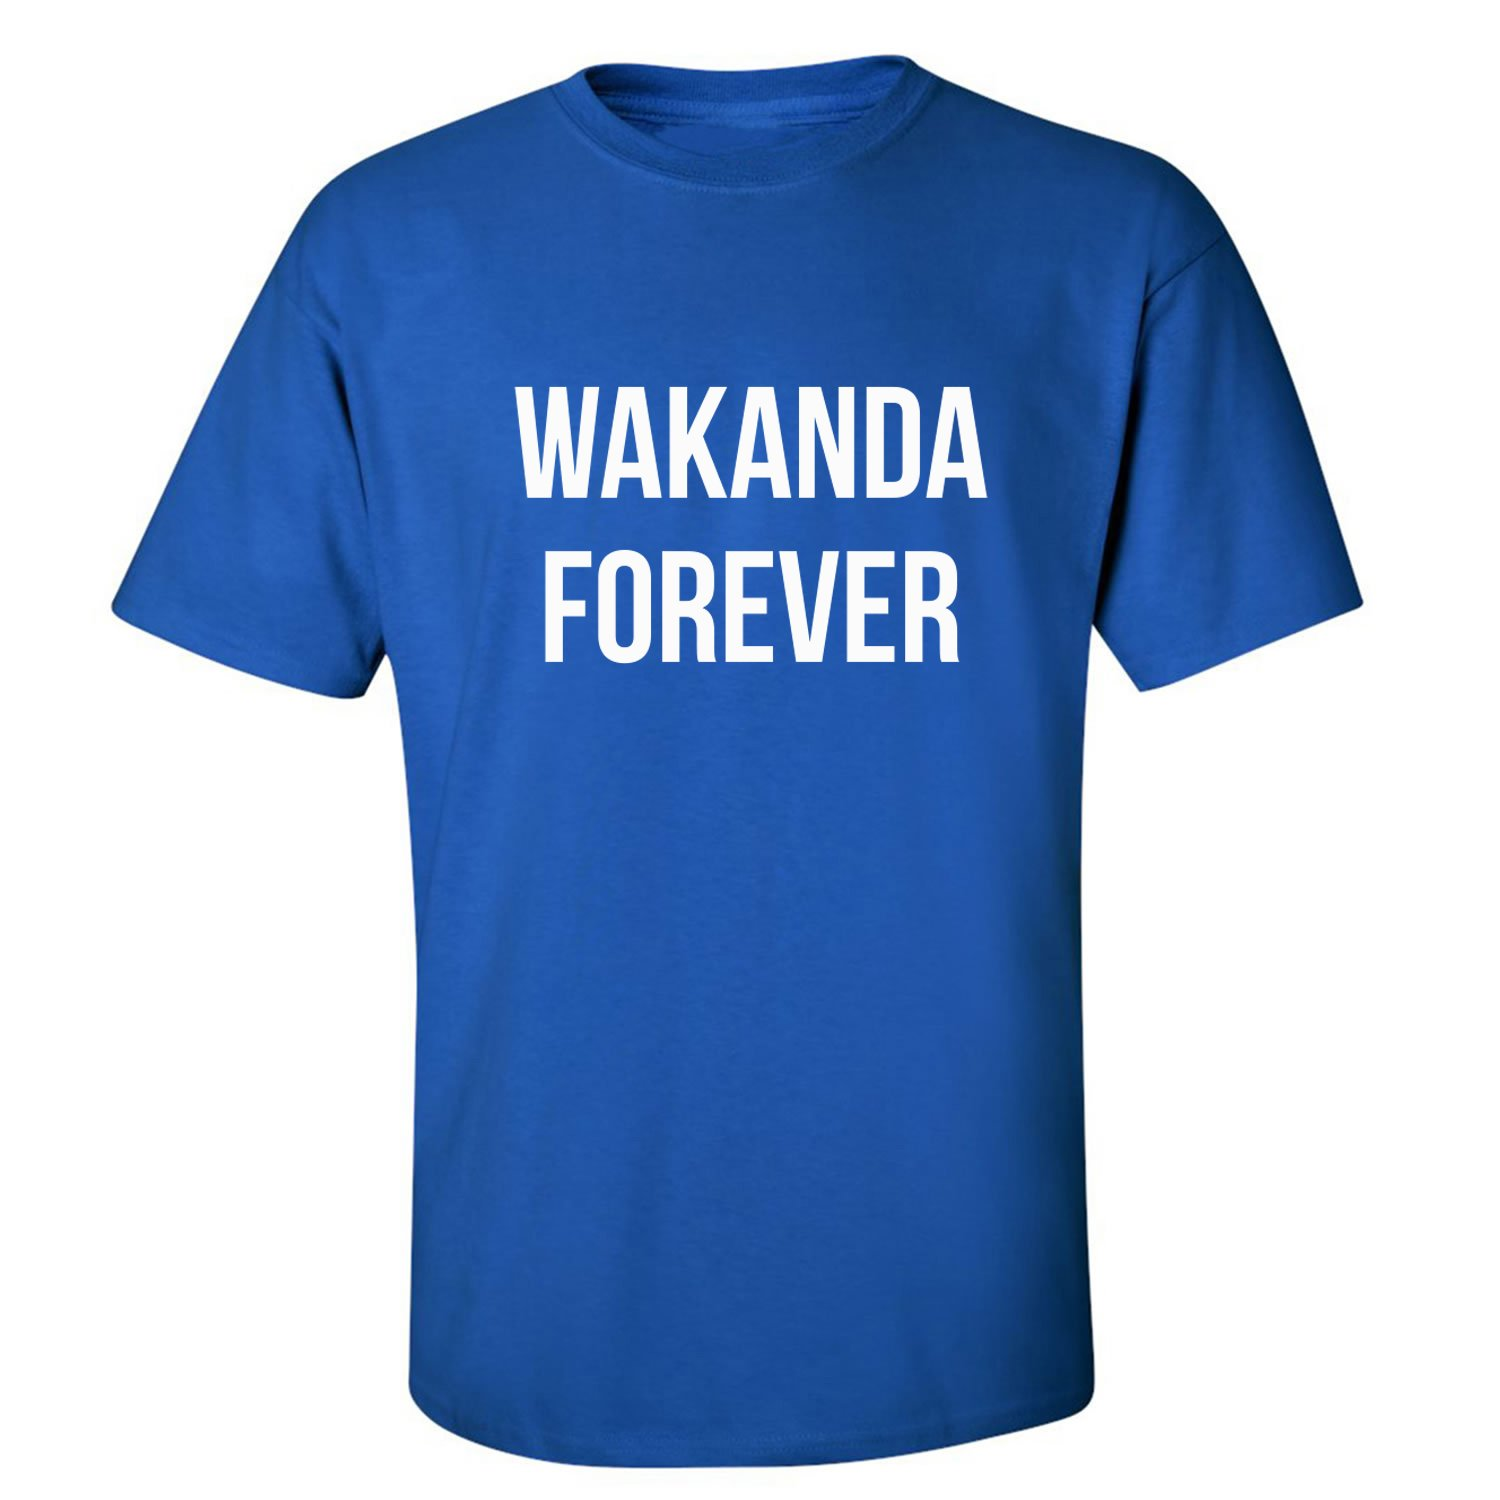 165d0b92e Amazon.com: Wakanda Forever Adult Short Sleeve T-Shirt: Clothing